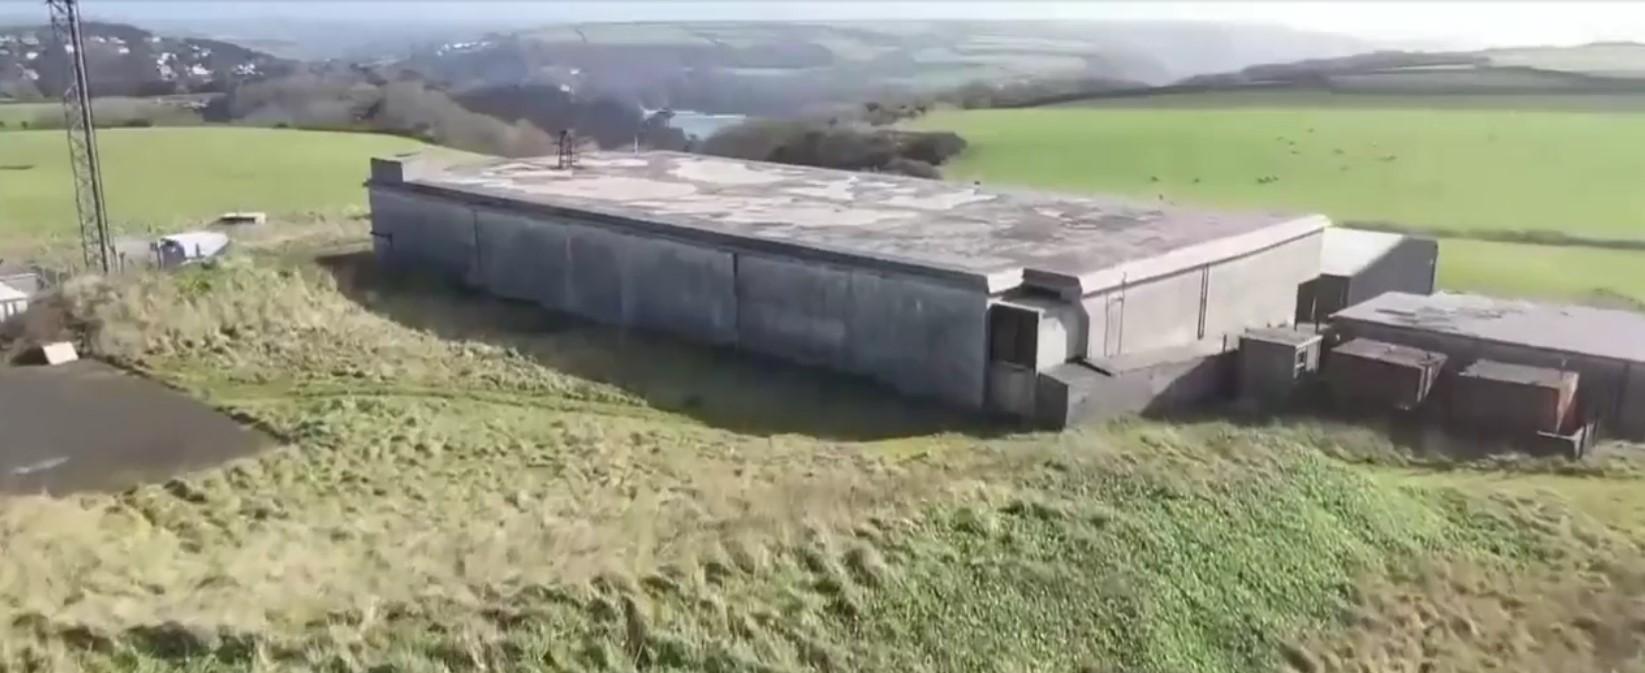 Cold war nuclear bunker hits the market in the UK